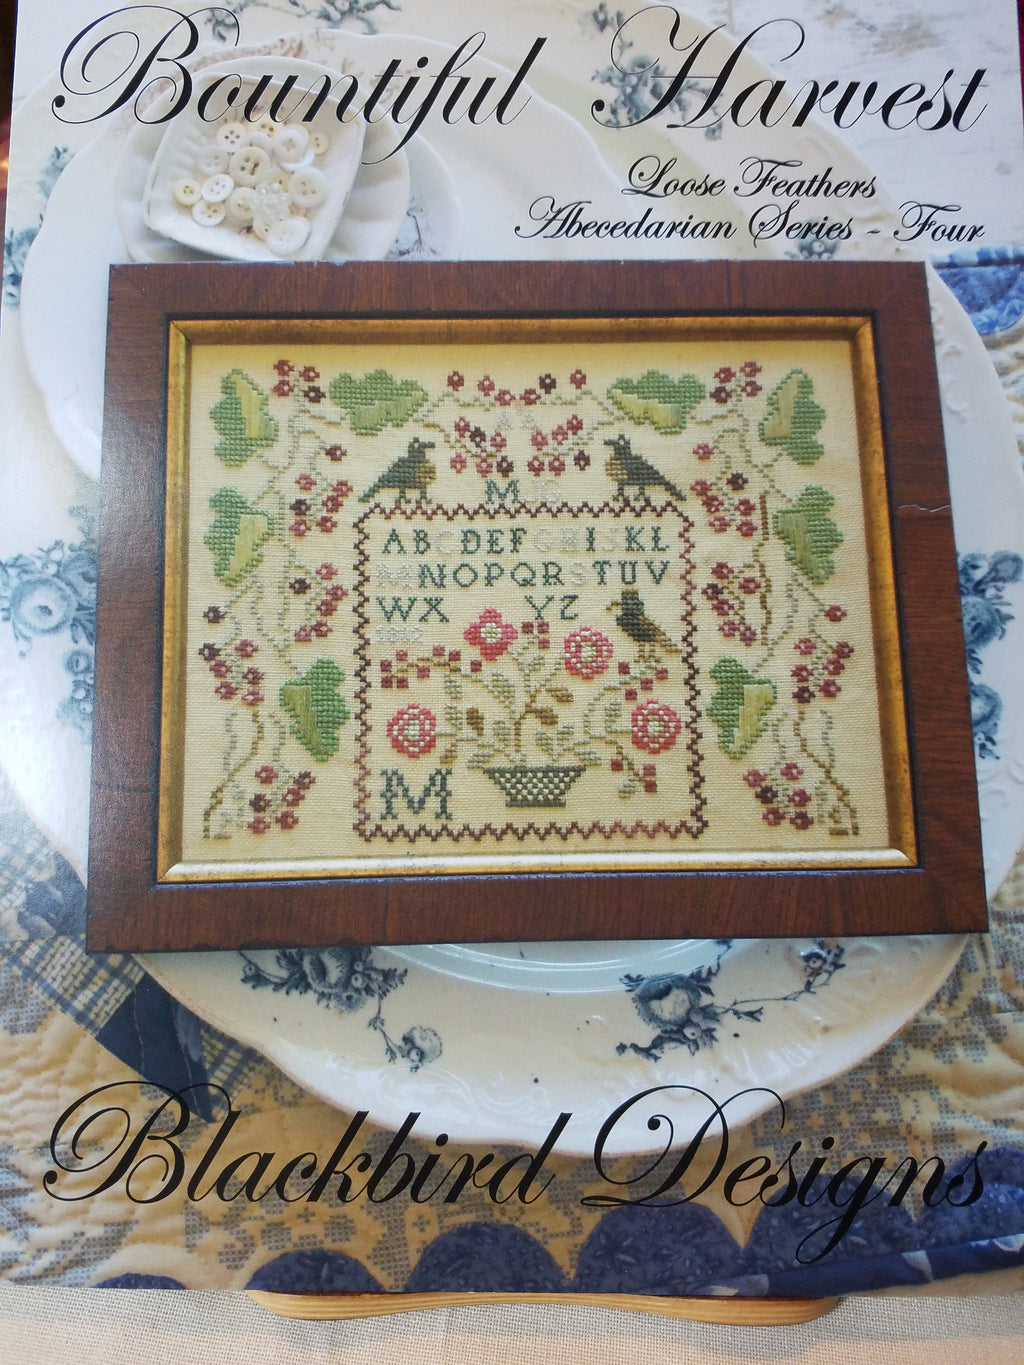 Loose Feathers - Bountiful Harvest - Cross Stitch Pattern Blackbird Designs